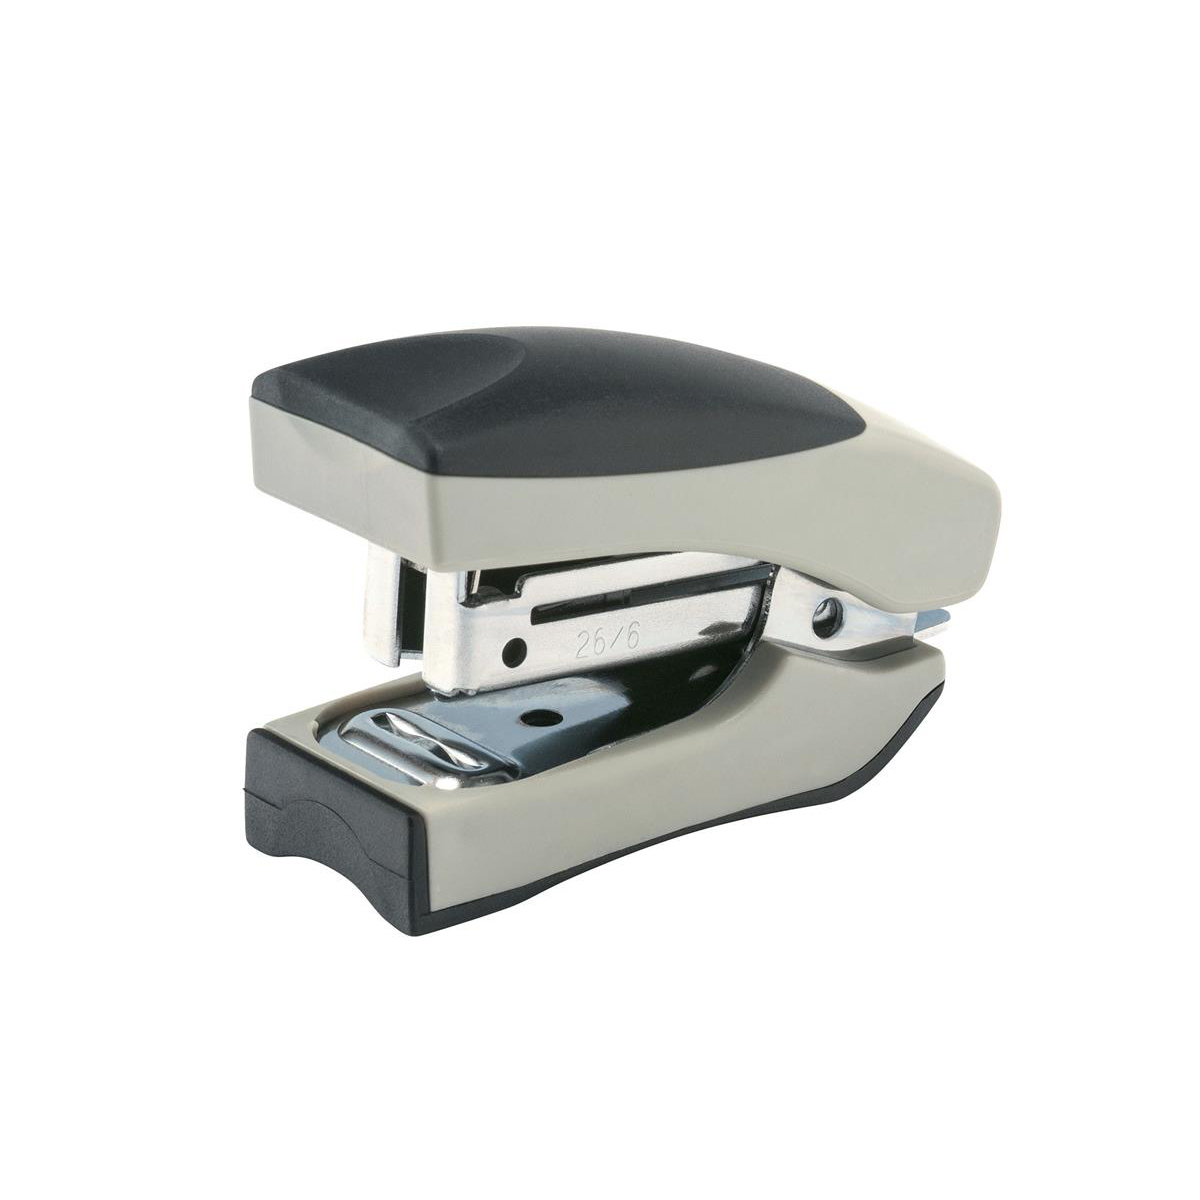 5 Star Office Stand-up Stapler Capacity 20 Sheets 50 Staples Silver/Black